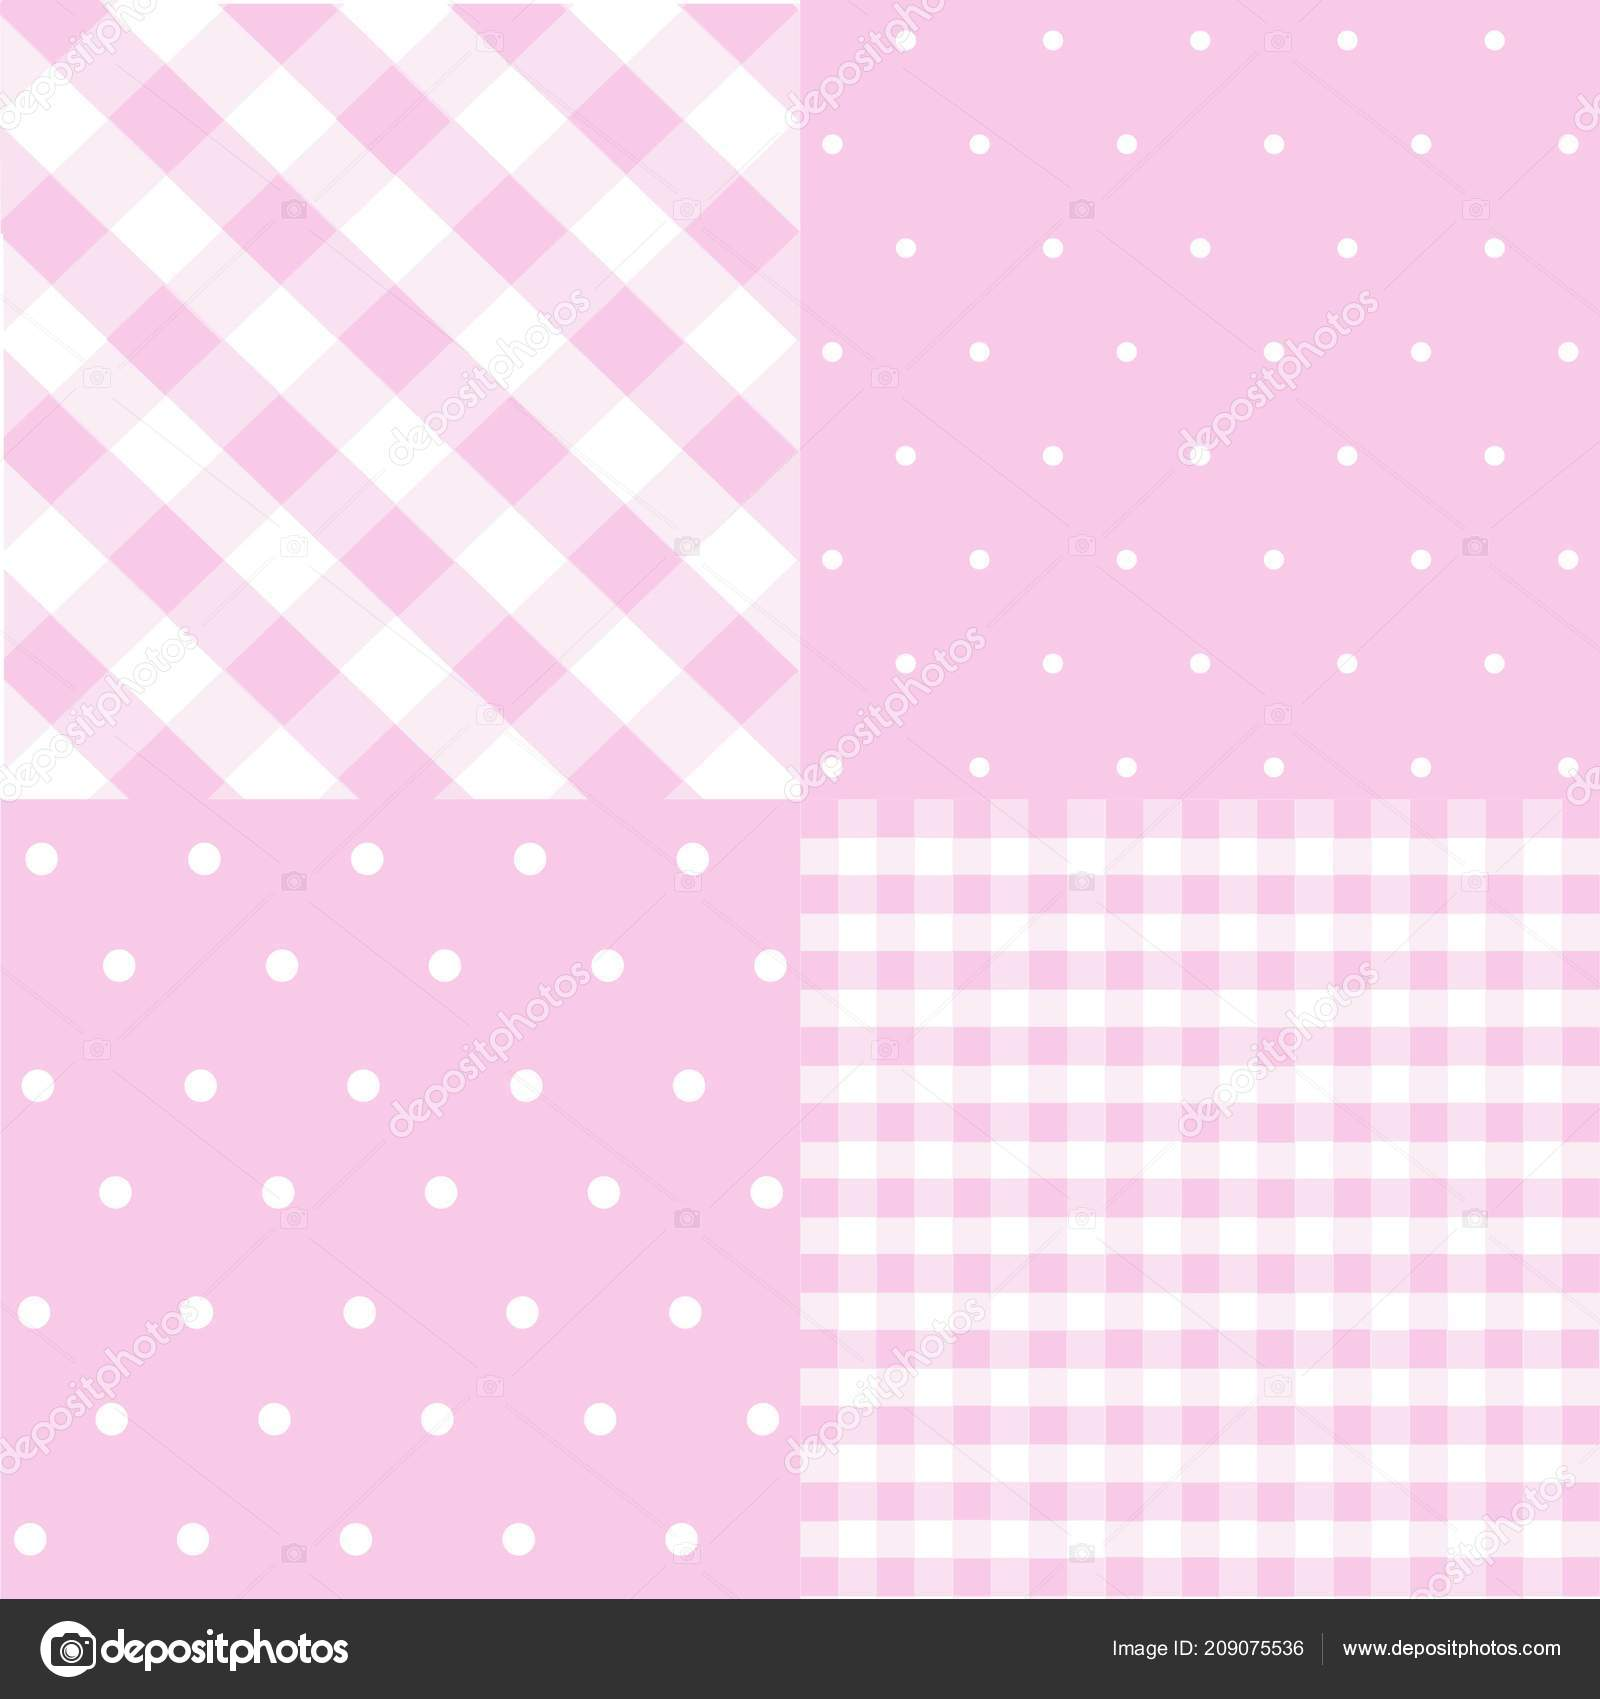 Seamless Patterns Baby Girl Shower Party Set Cute Pink Backgrounds